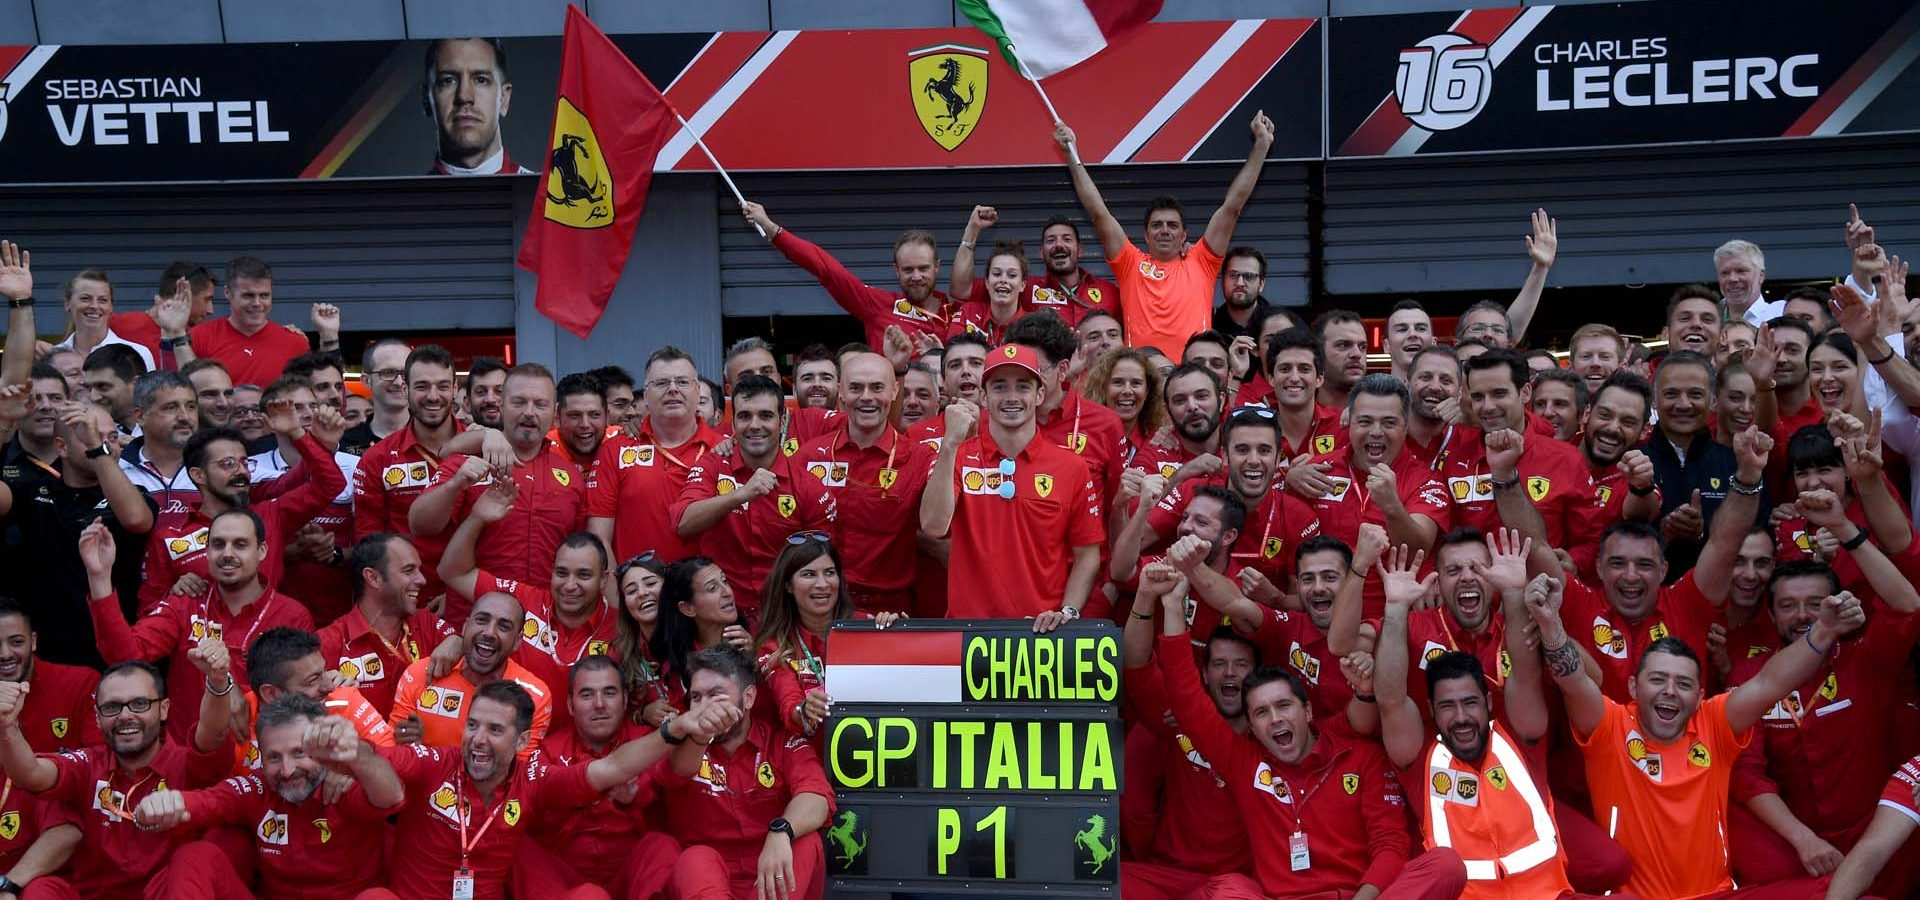 Ferrari team photo after Charles Leclerc win in Monza, Italy